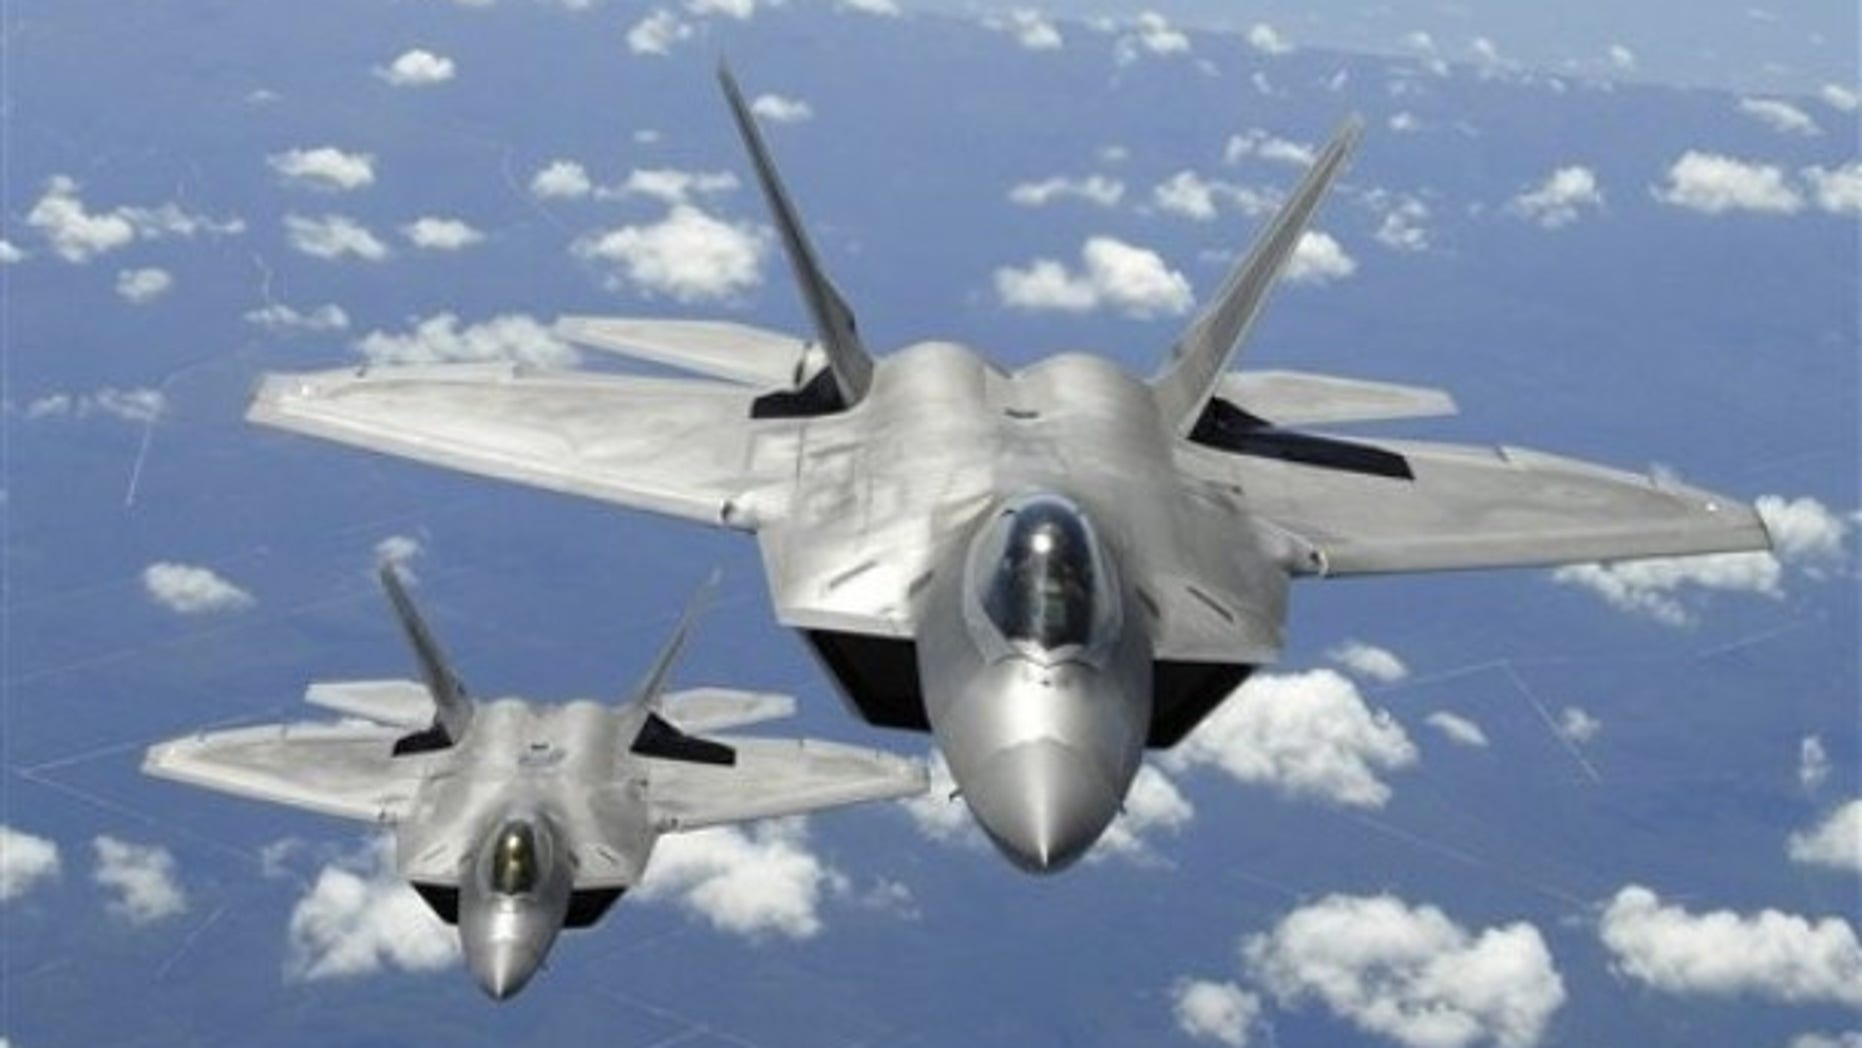 This 2007 image shows two U.S. Air Force F-22 Raptor aircraft during a training mission. The wreckage from a missing F-22 Raptor has been found in Alaska near Denali National Park.